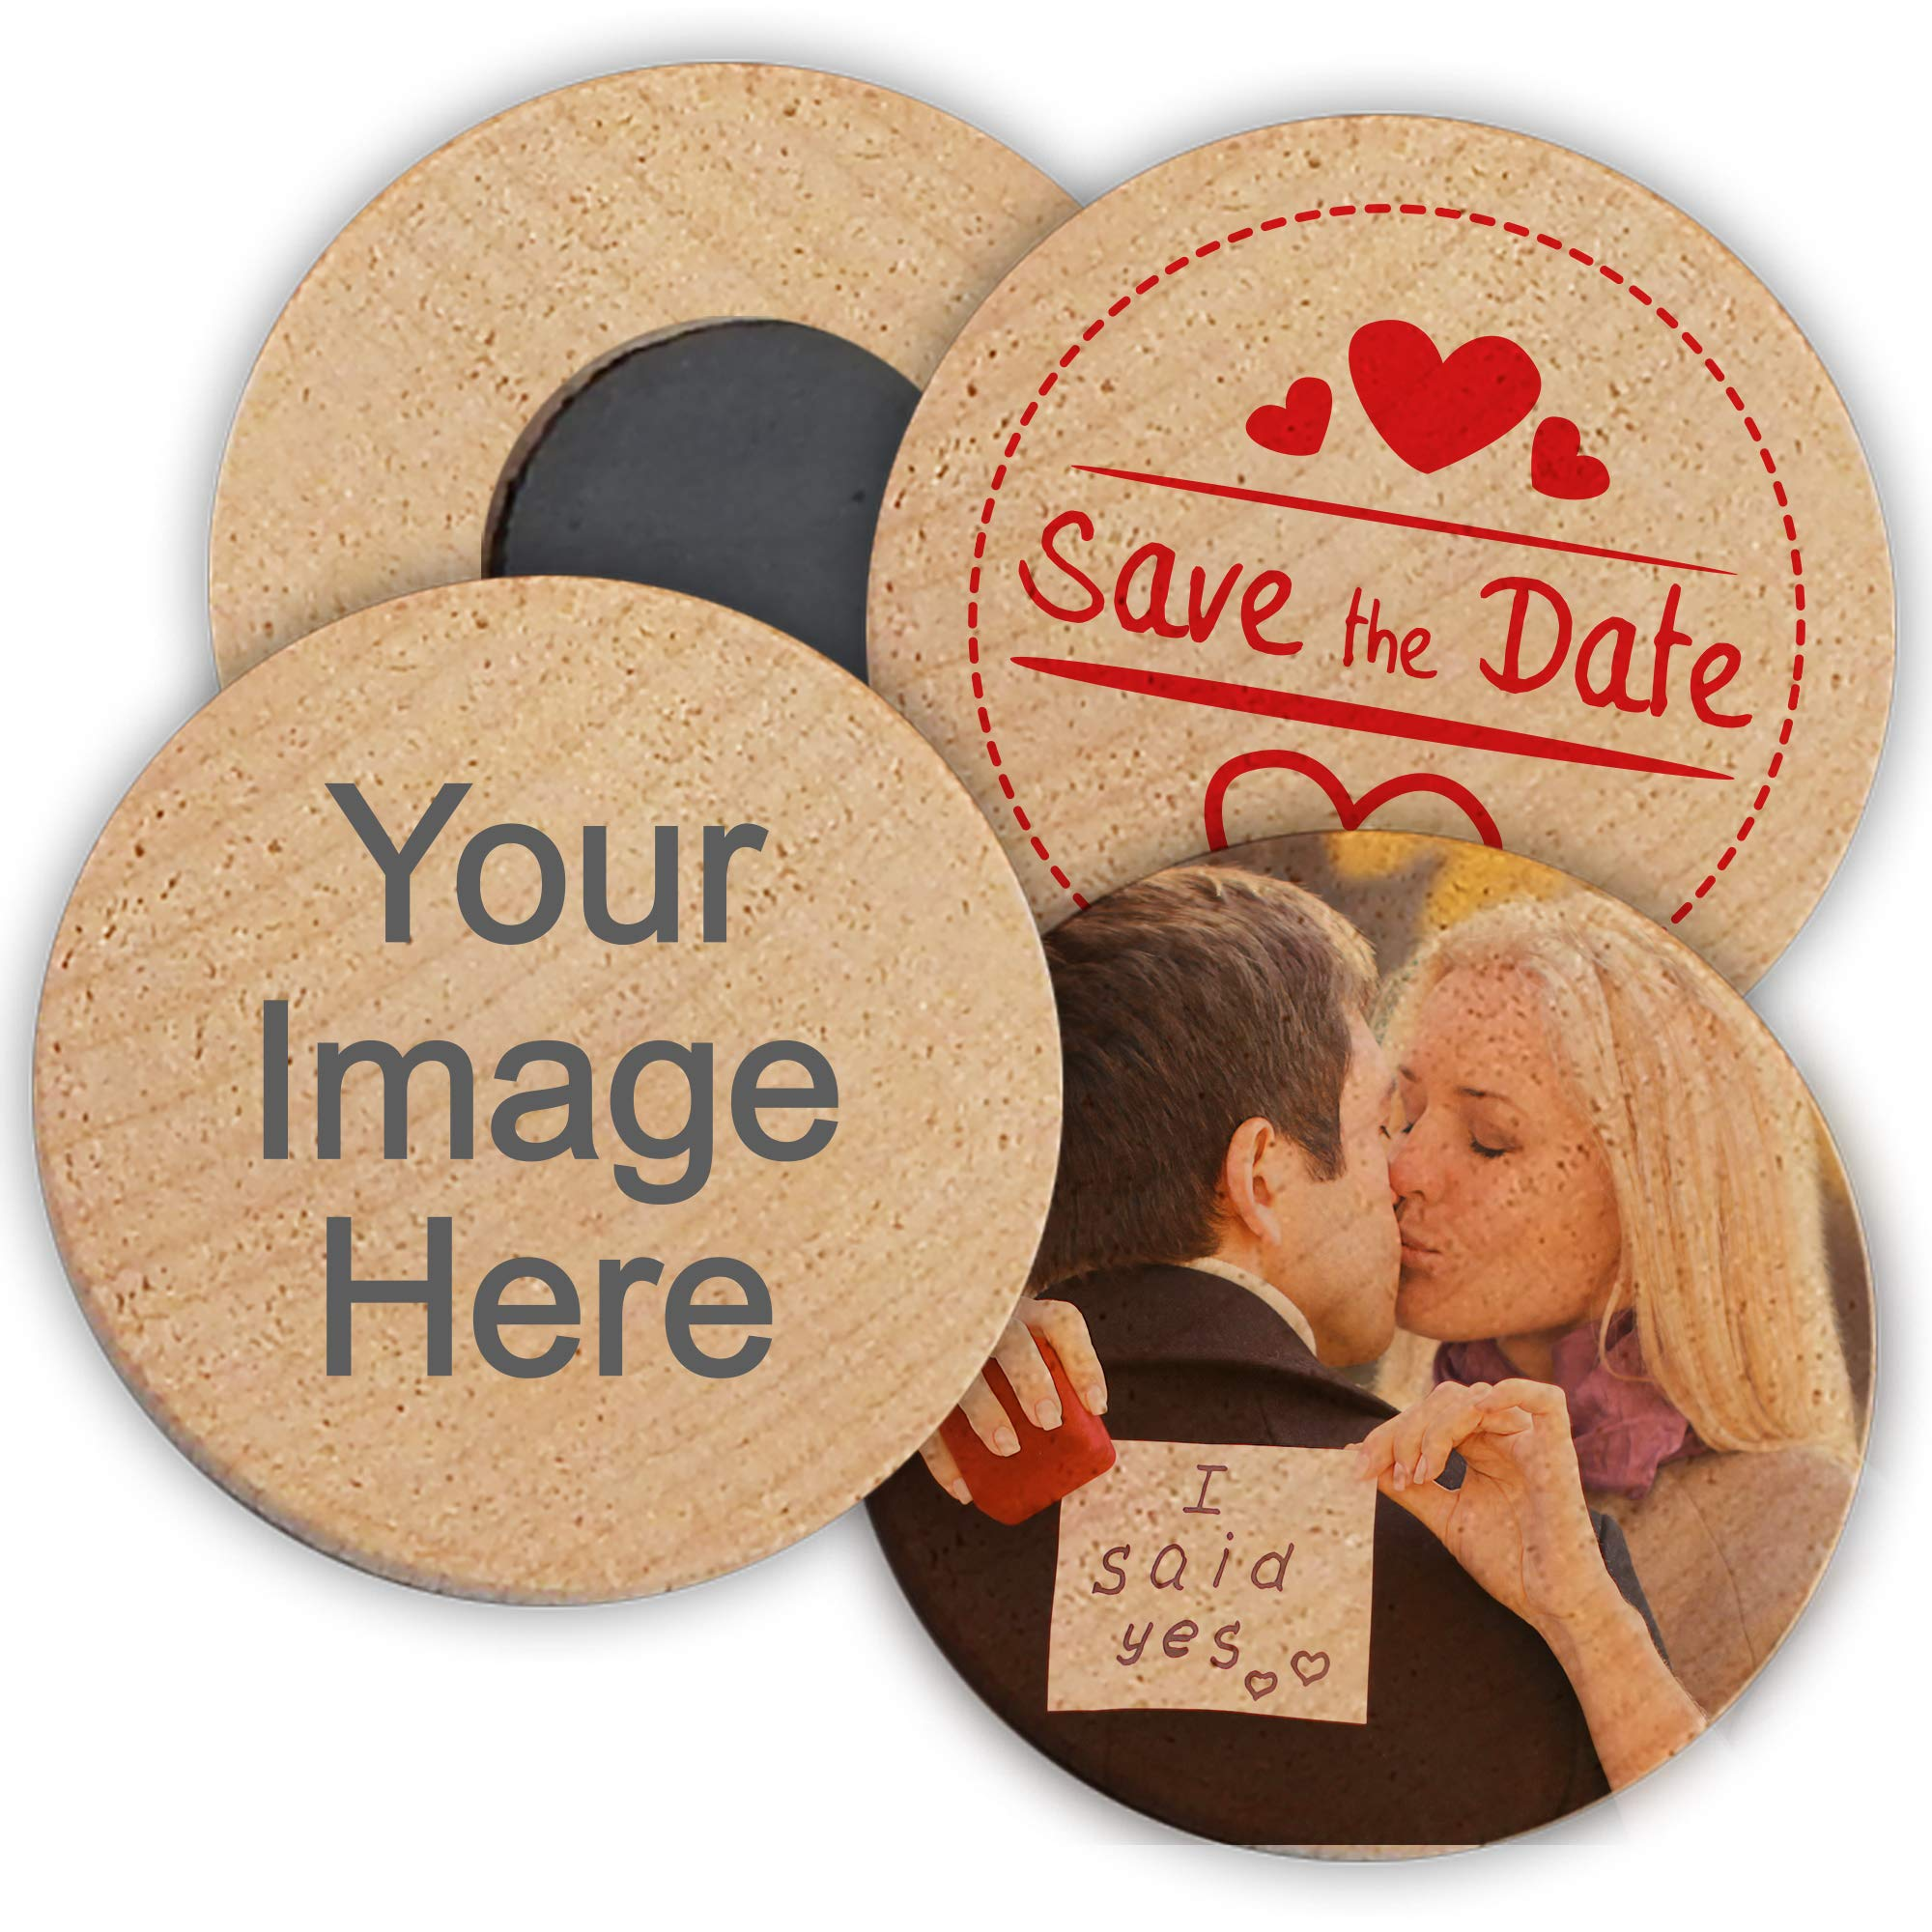 Personalized Wooden Wedding Magnets, Personalized Refrigerator Magnets, Custom Save The Date Magnets (Set of 50) by Best Day Ever Spot